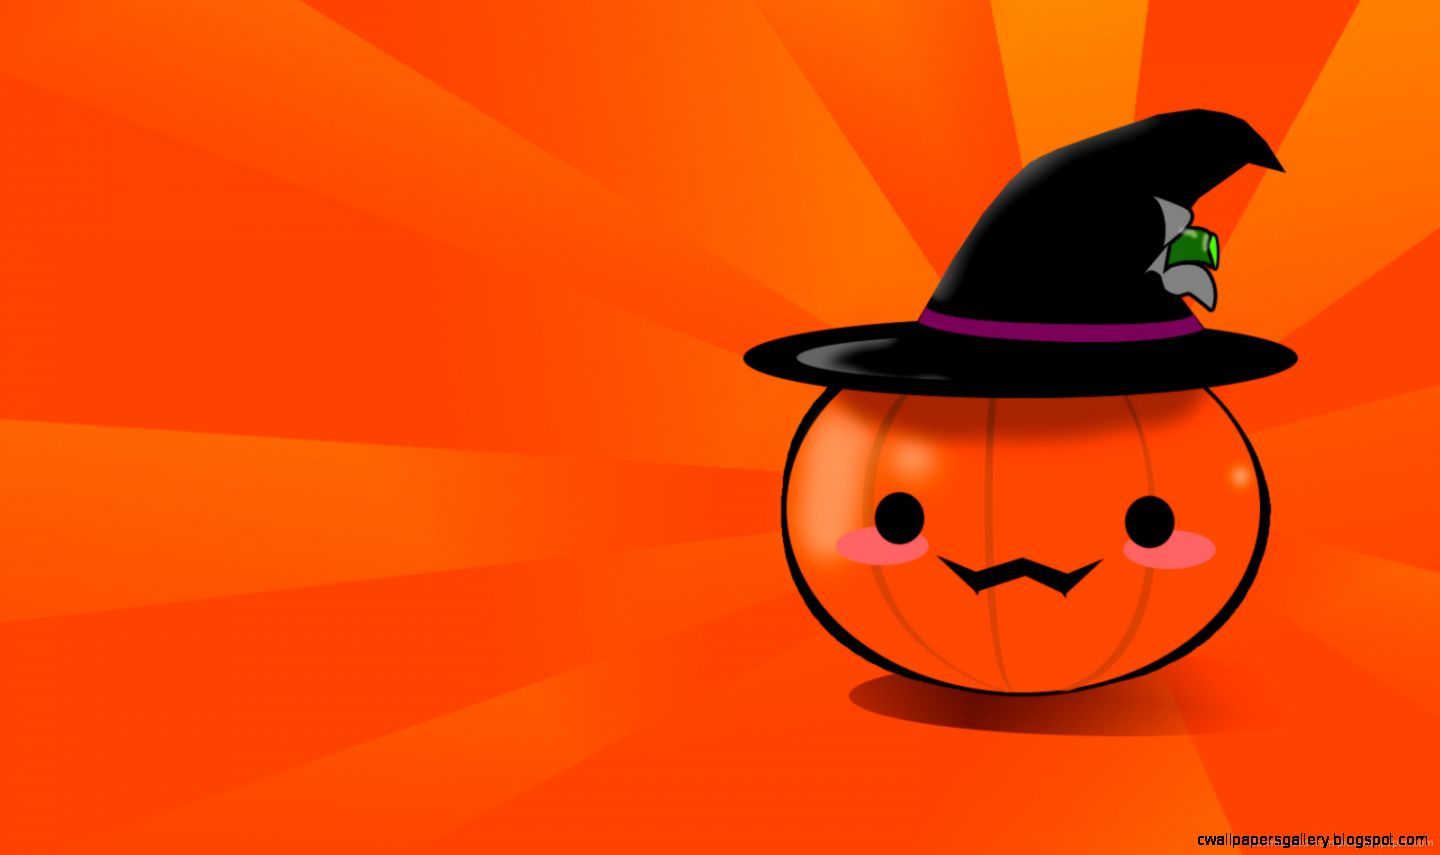 Pumpkin Halloween Wallpaper   WallpaperSafari